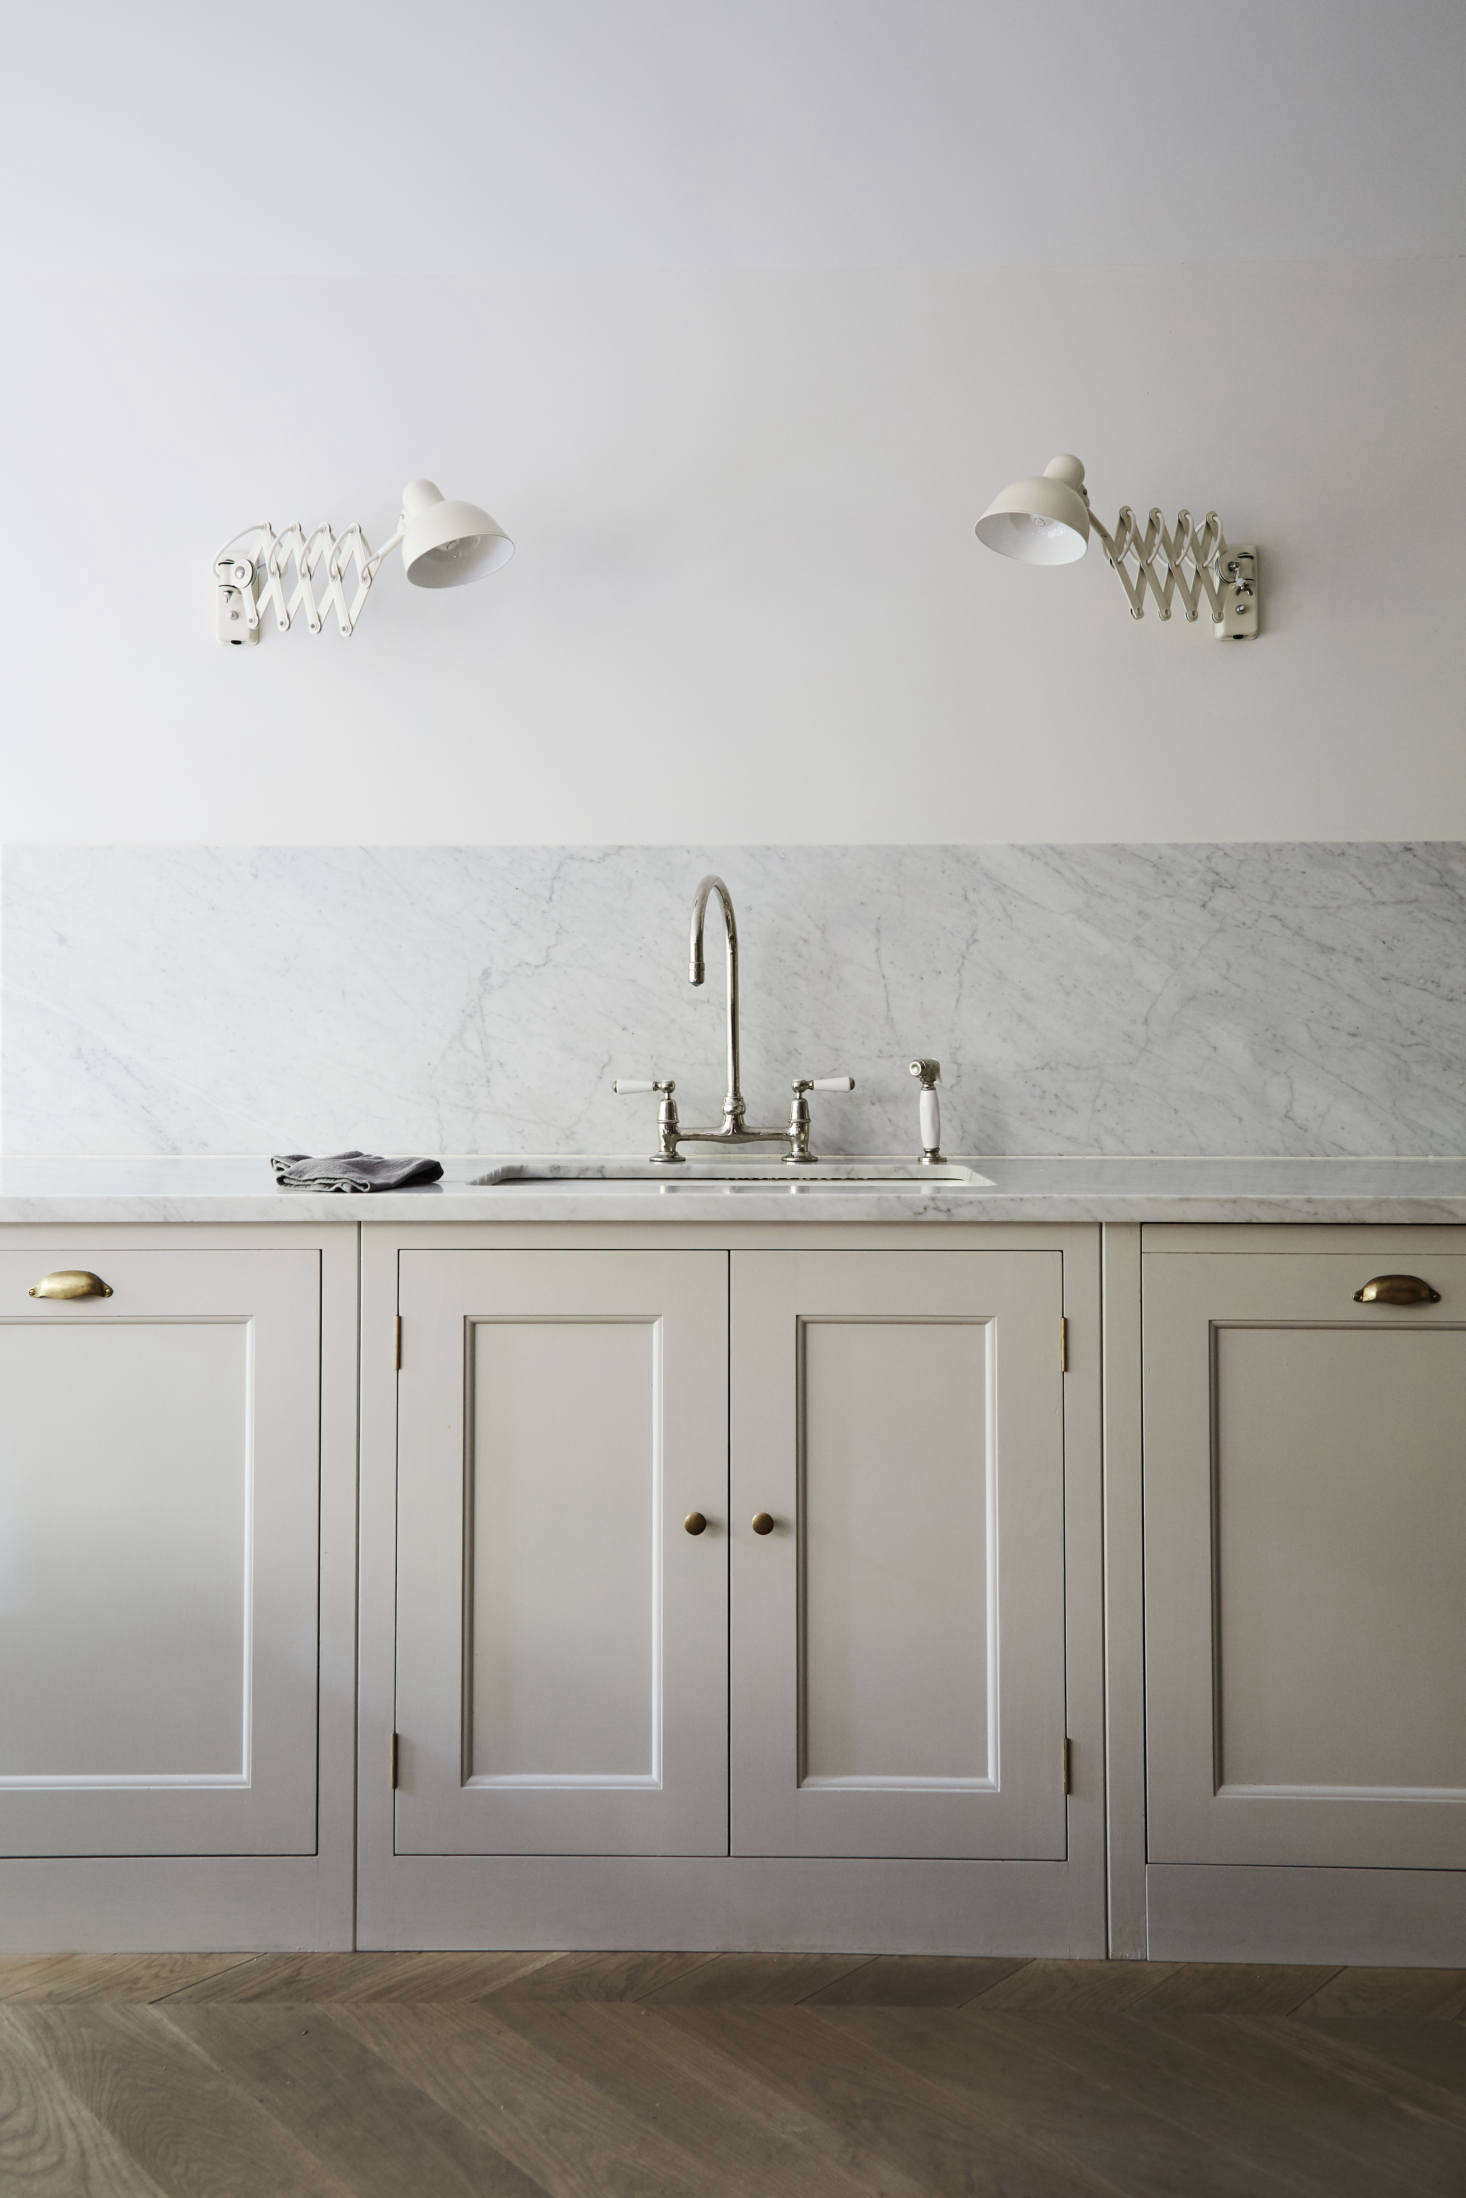 16 Favorite Solid Marble Kitchen Backsplashes For Maximum Drama Remodelista